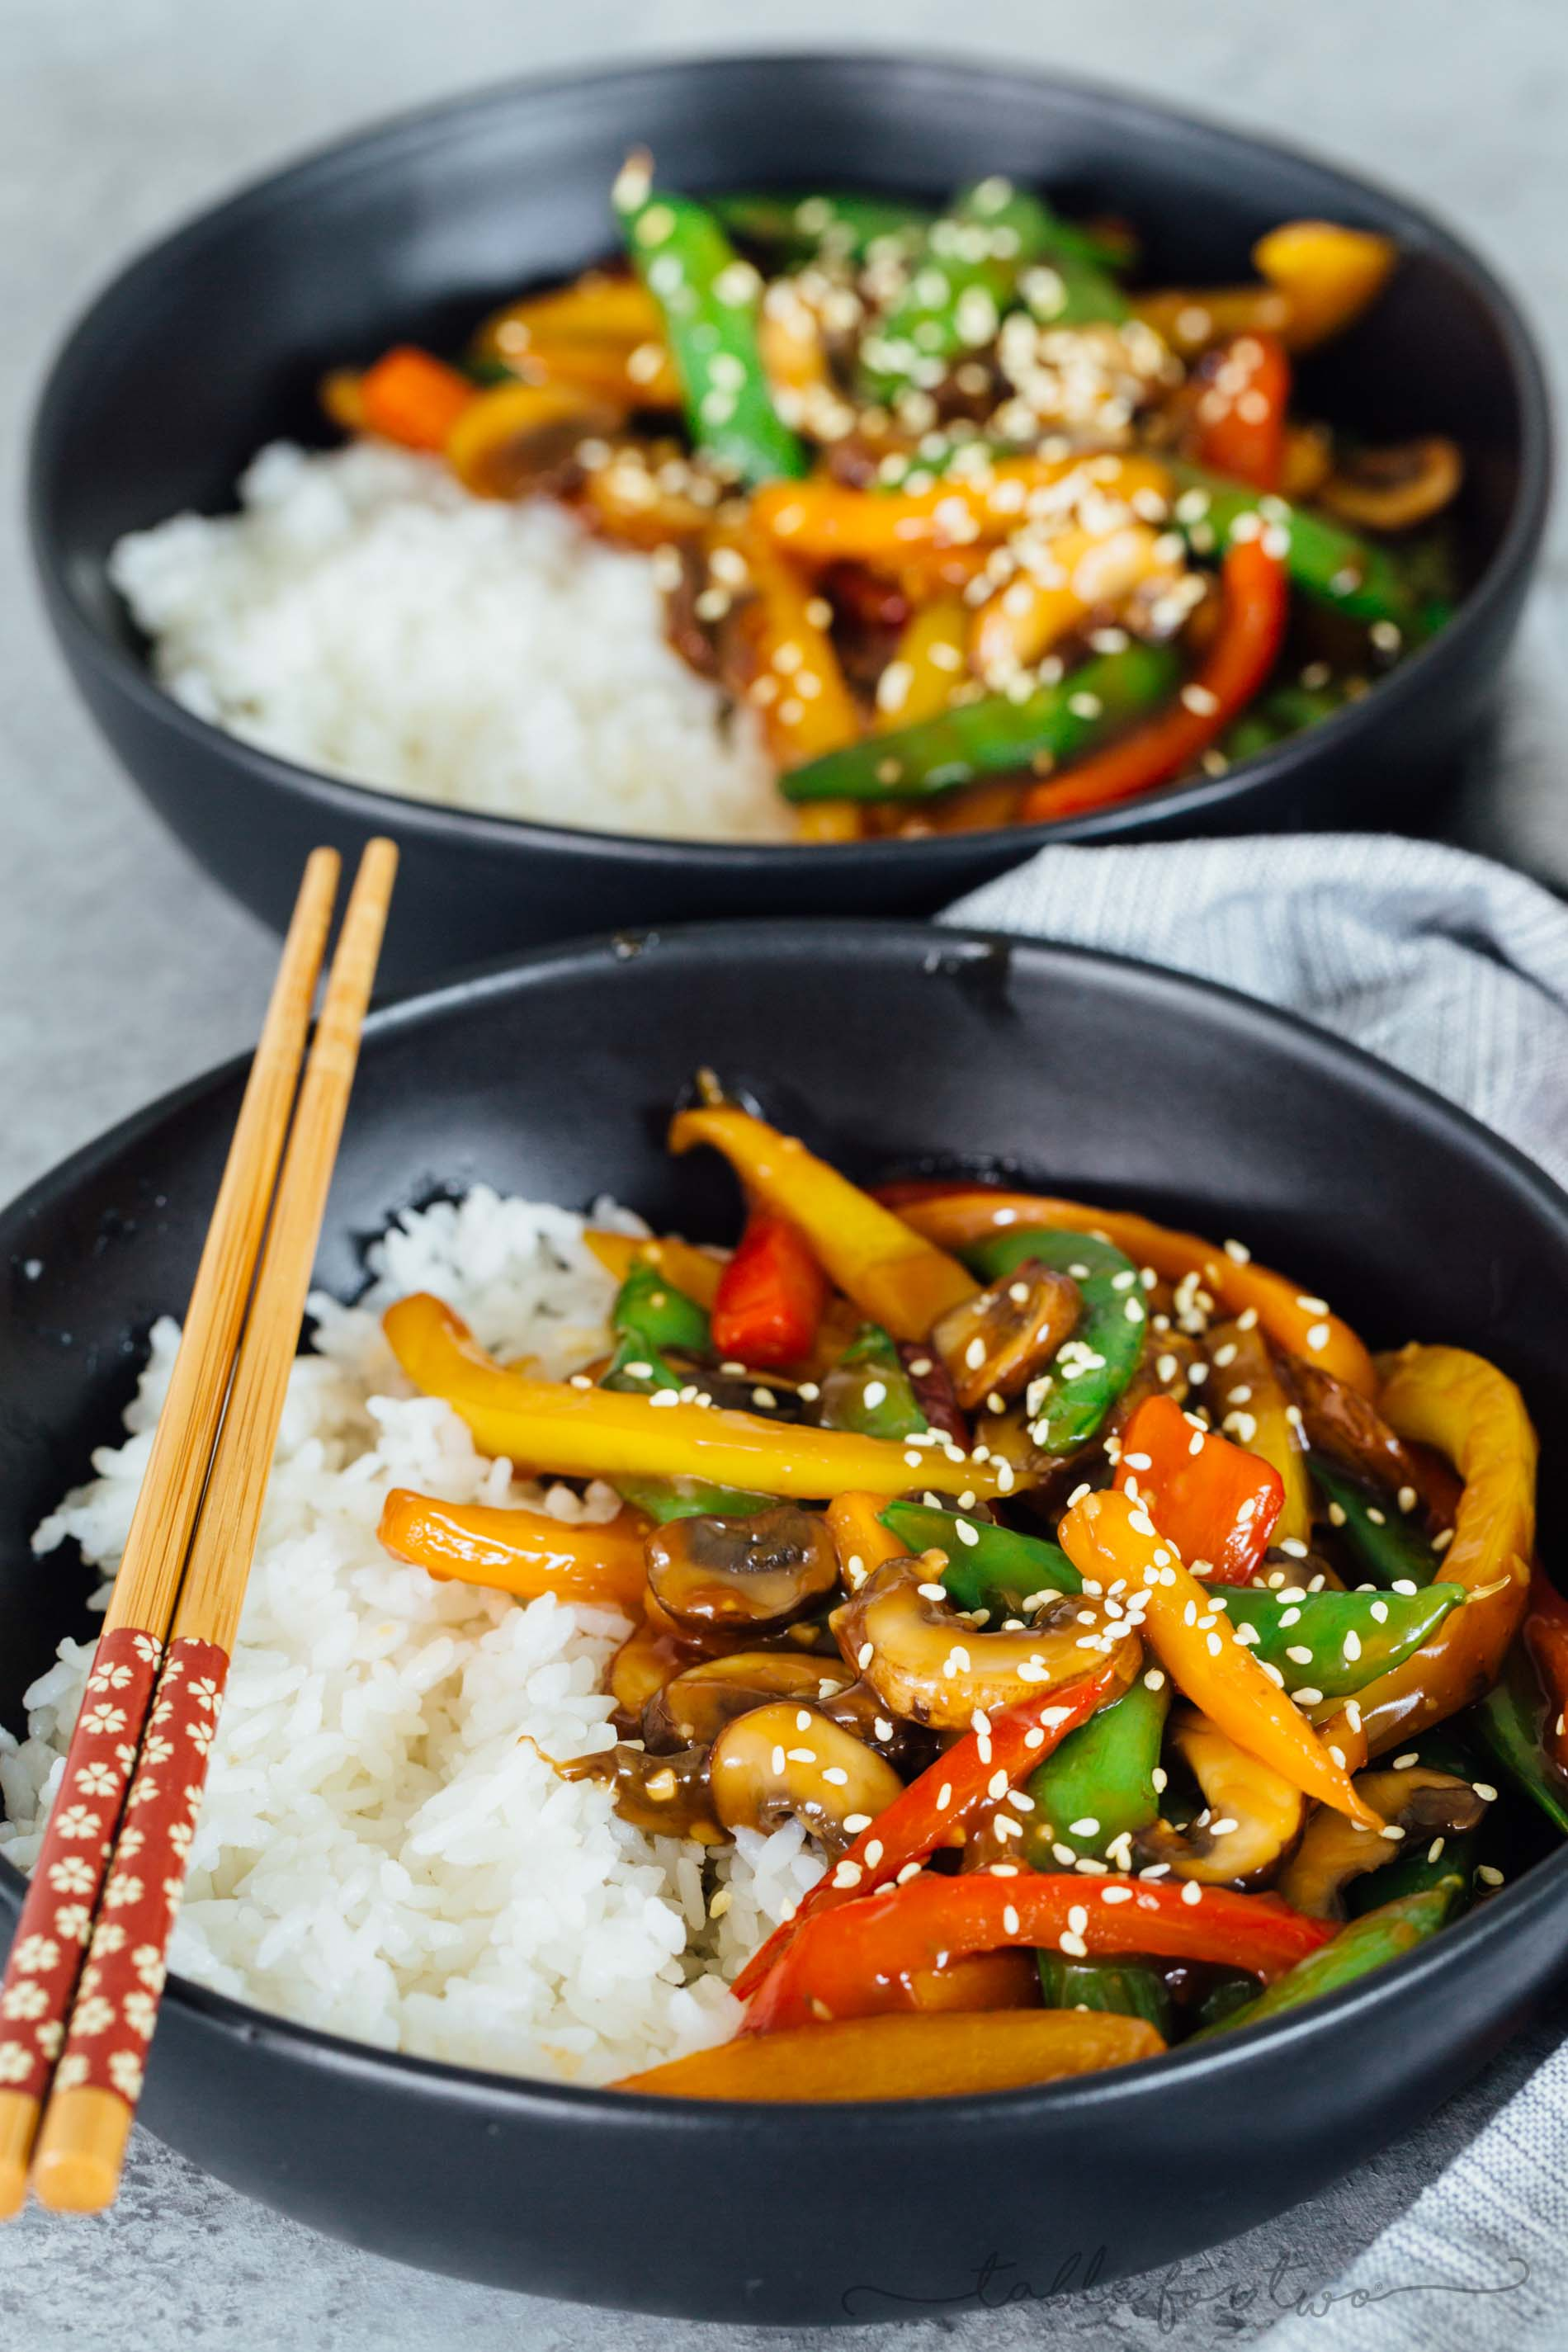 If you're in a dinner rut and need a quick and flavorful dinner idea, this 20-minute vegetable stir fry has got it all! Super easy to prep ahead of time, too!